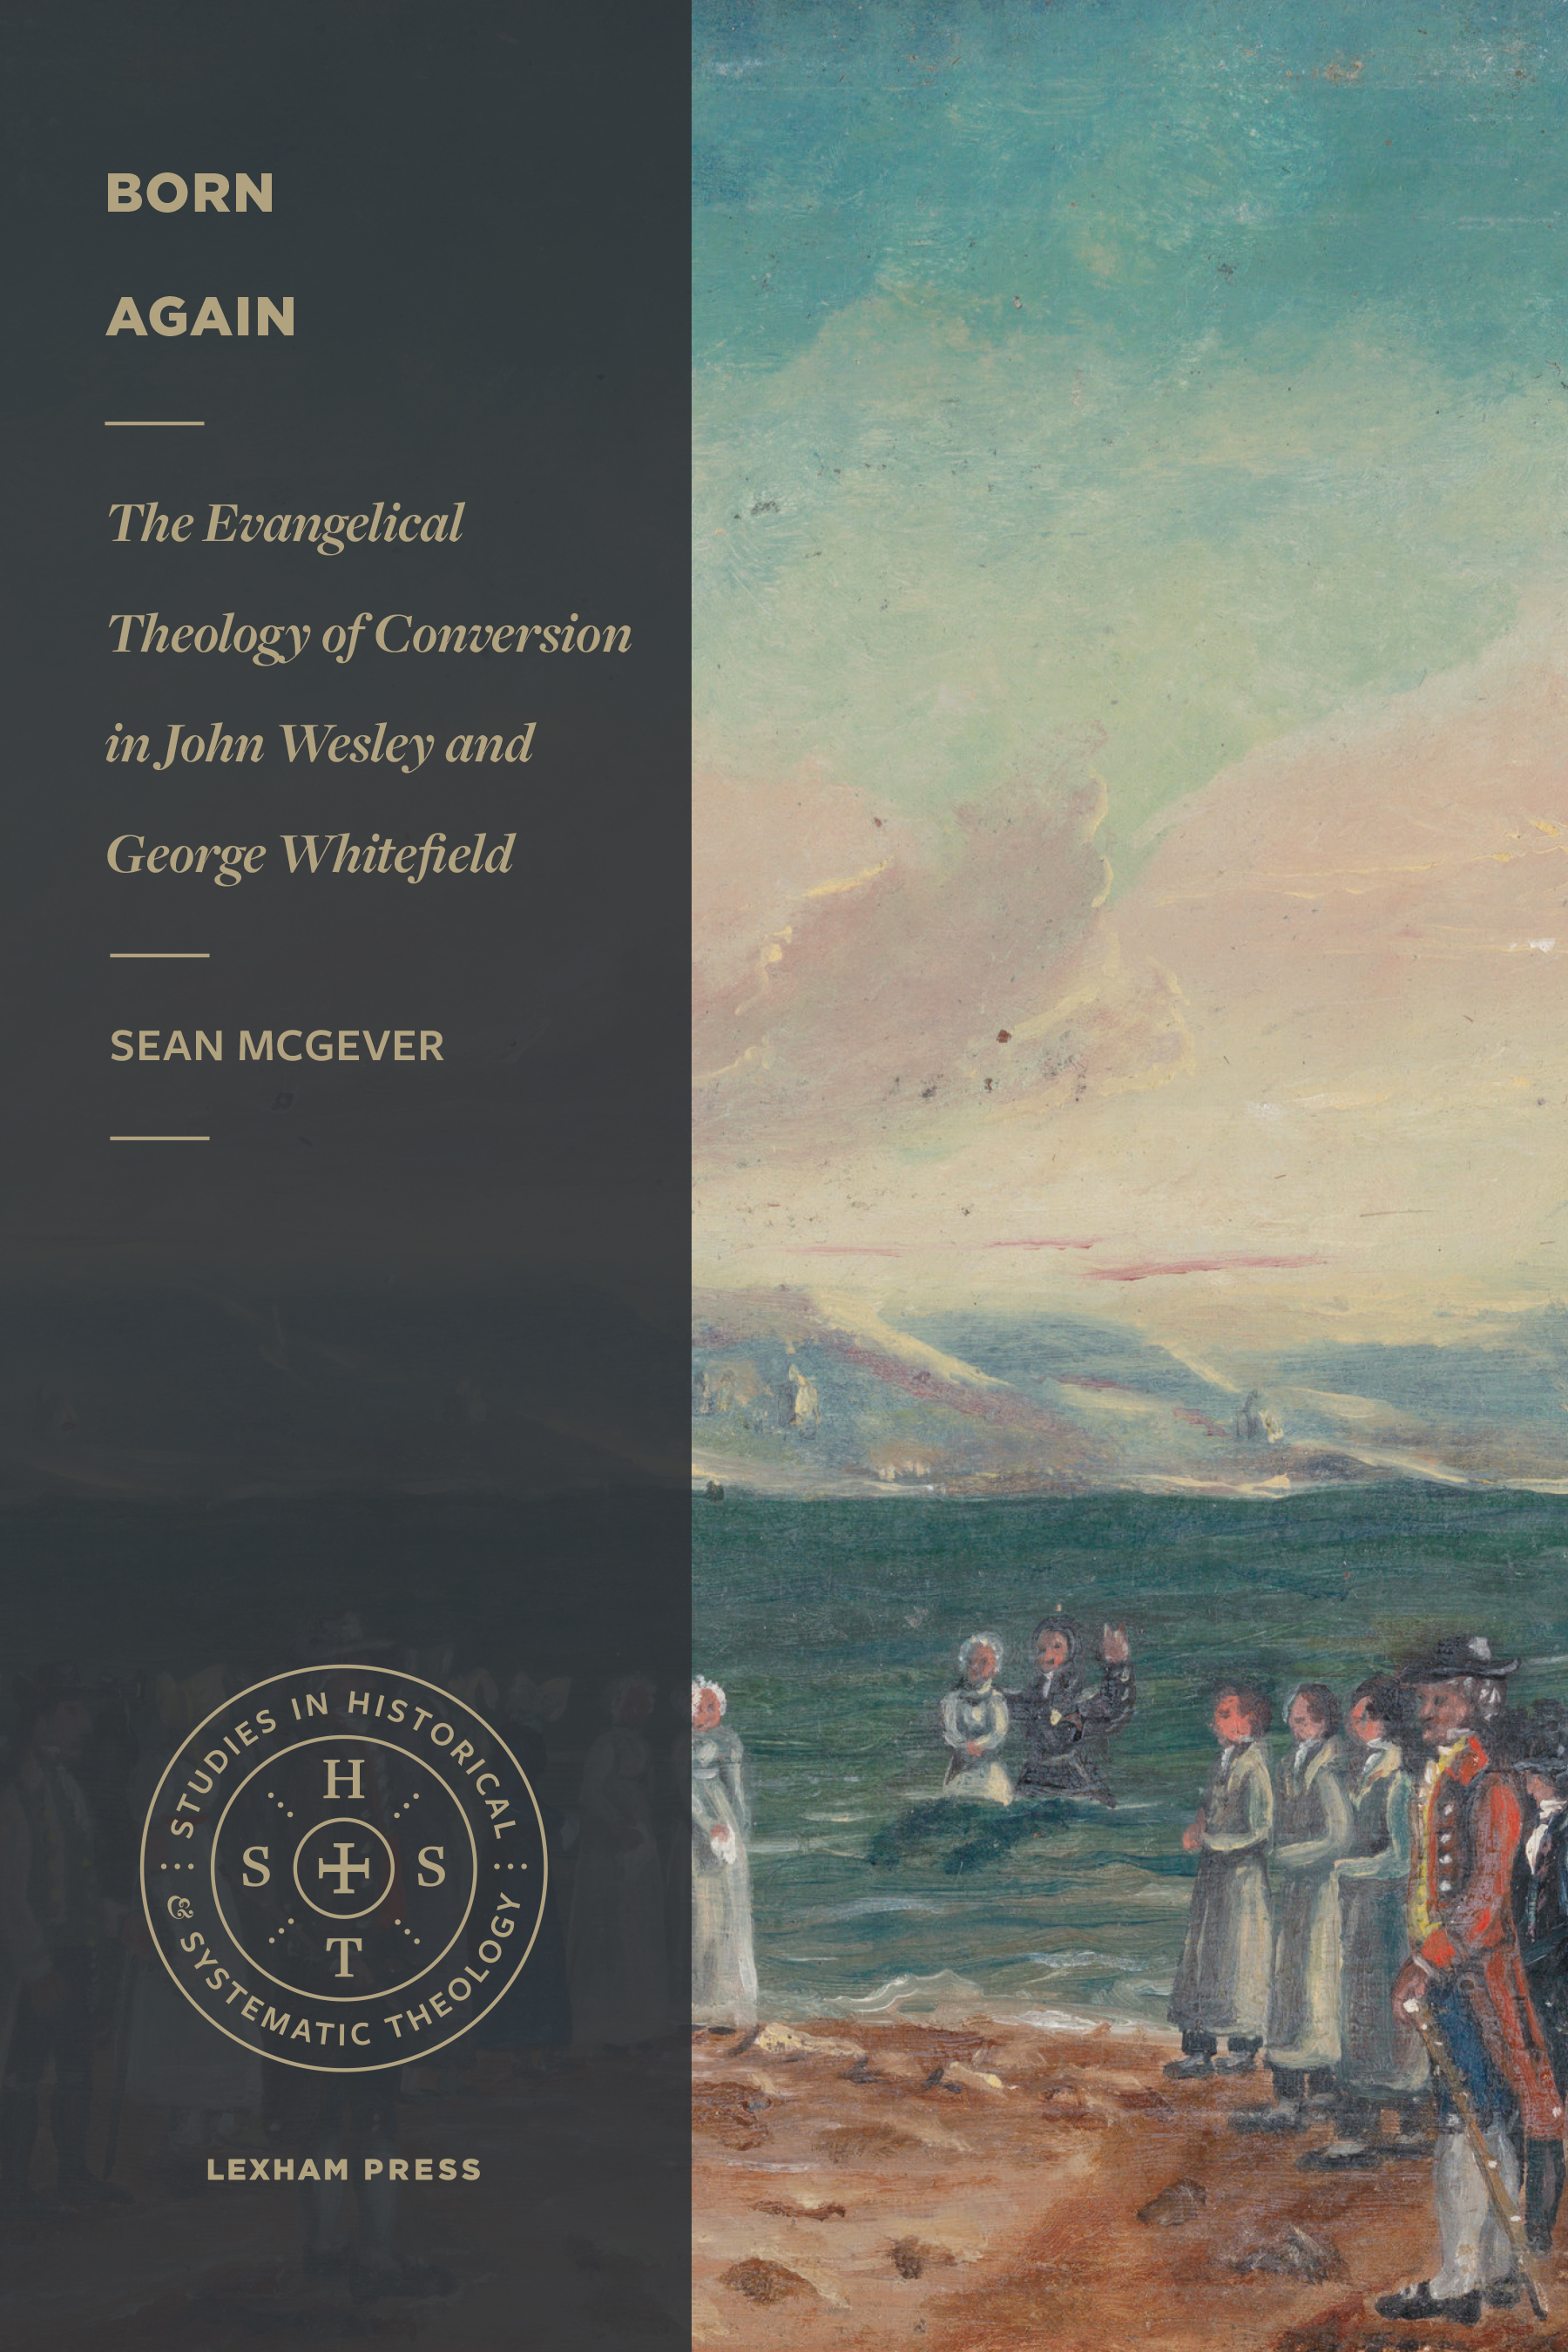 Born Again: The Evangelical Theology of Conversion in John Wesley and George Whitefield